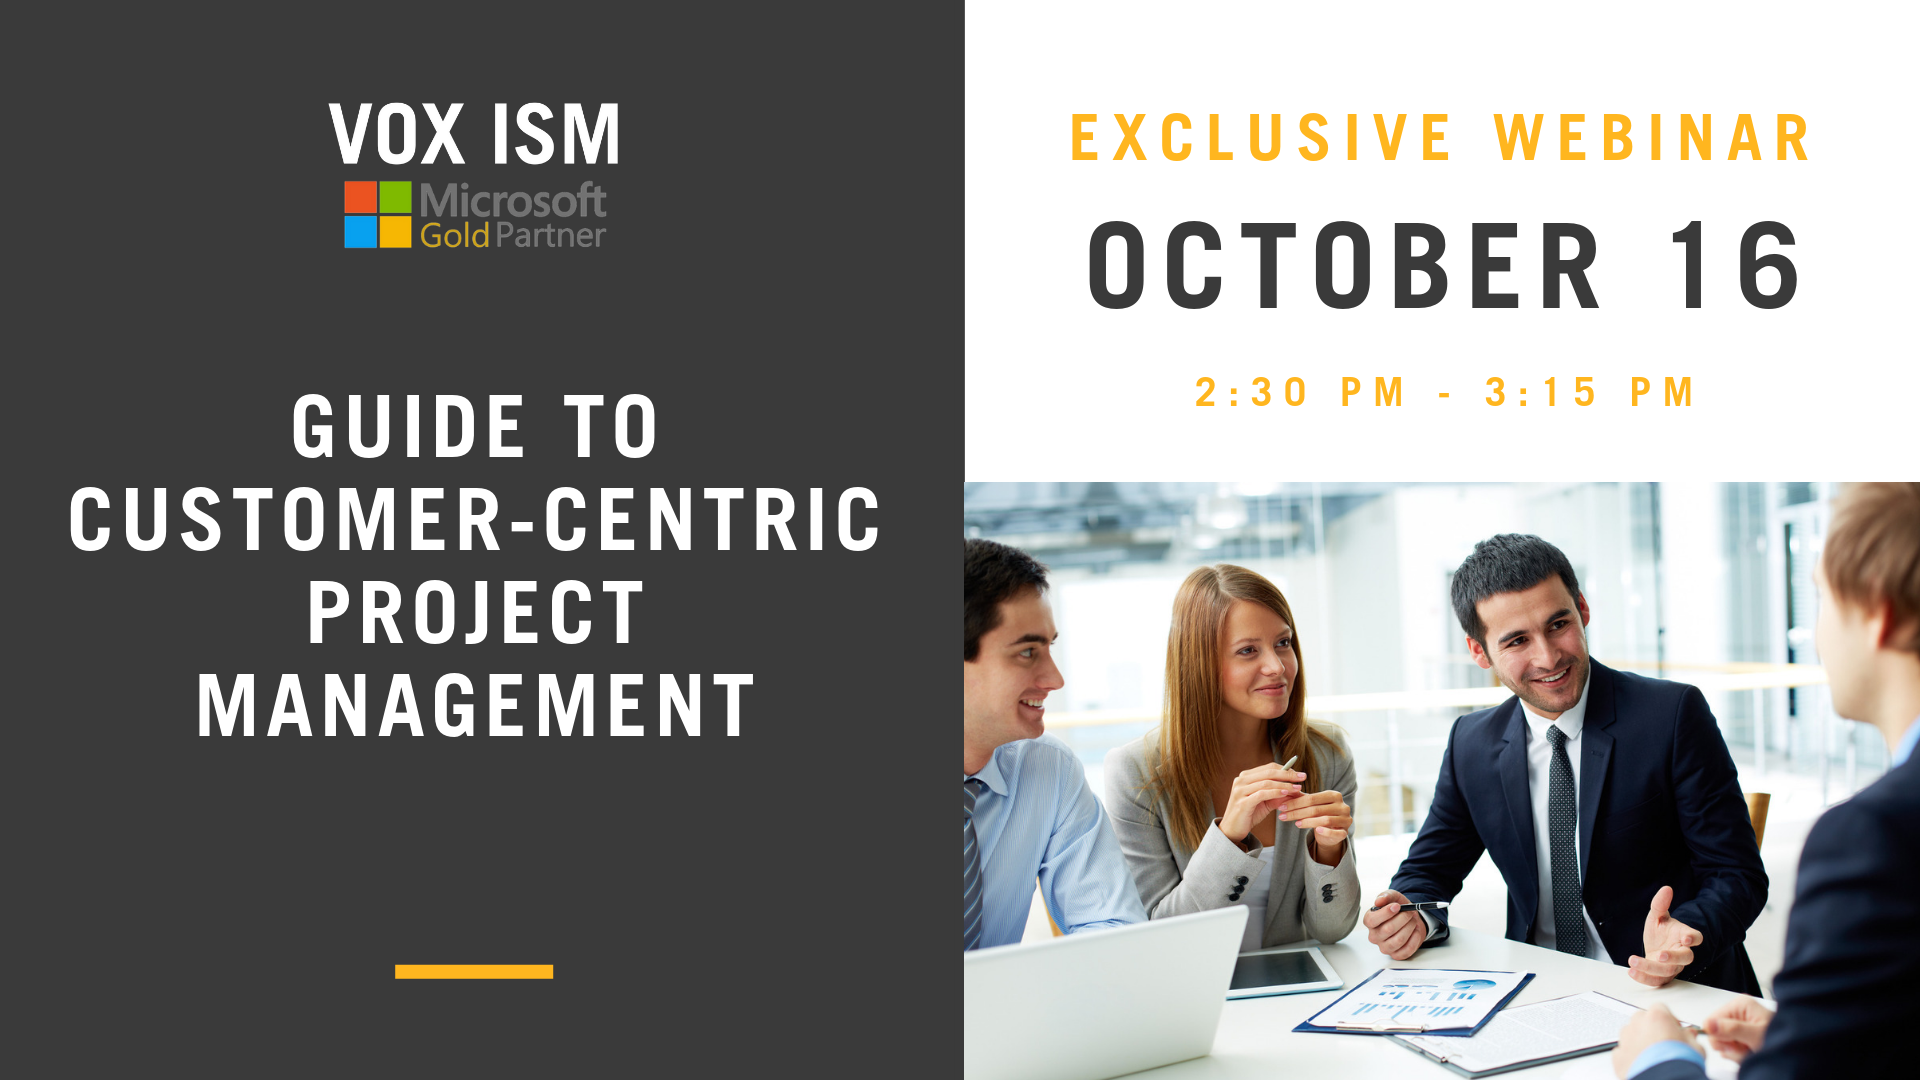 Guide to Customer-Centric Project Management - October 16 - Webinar - VOX ISM